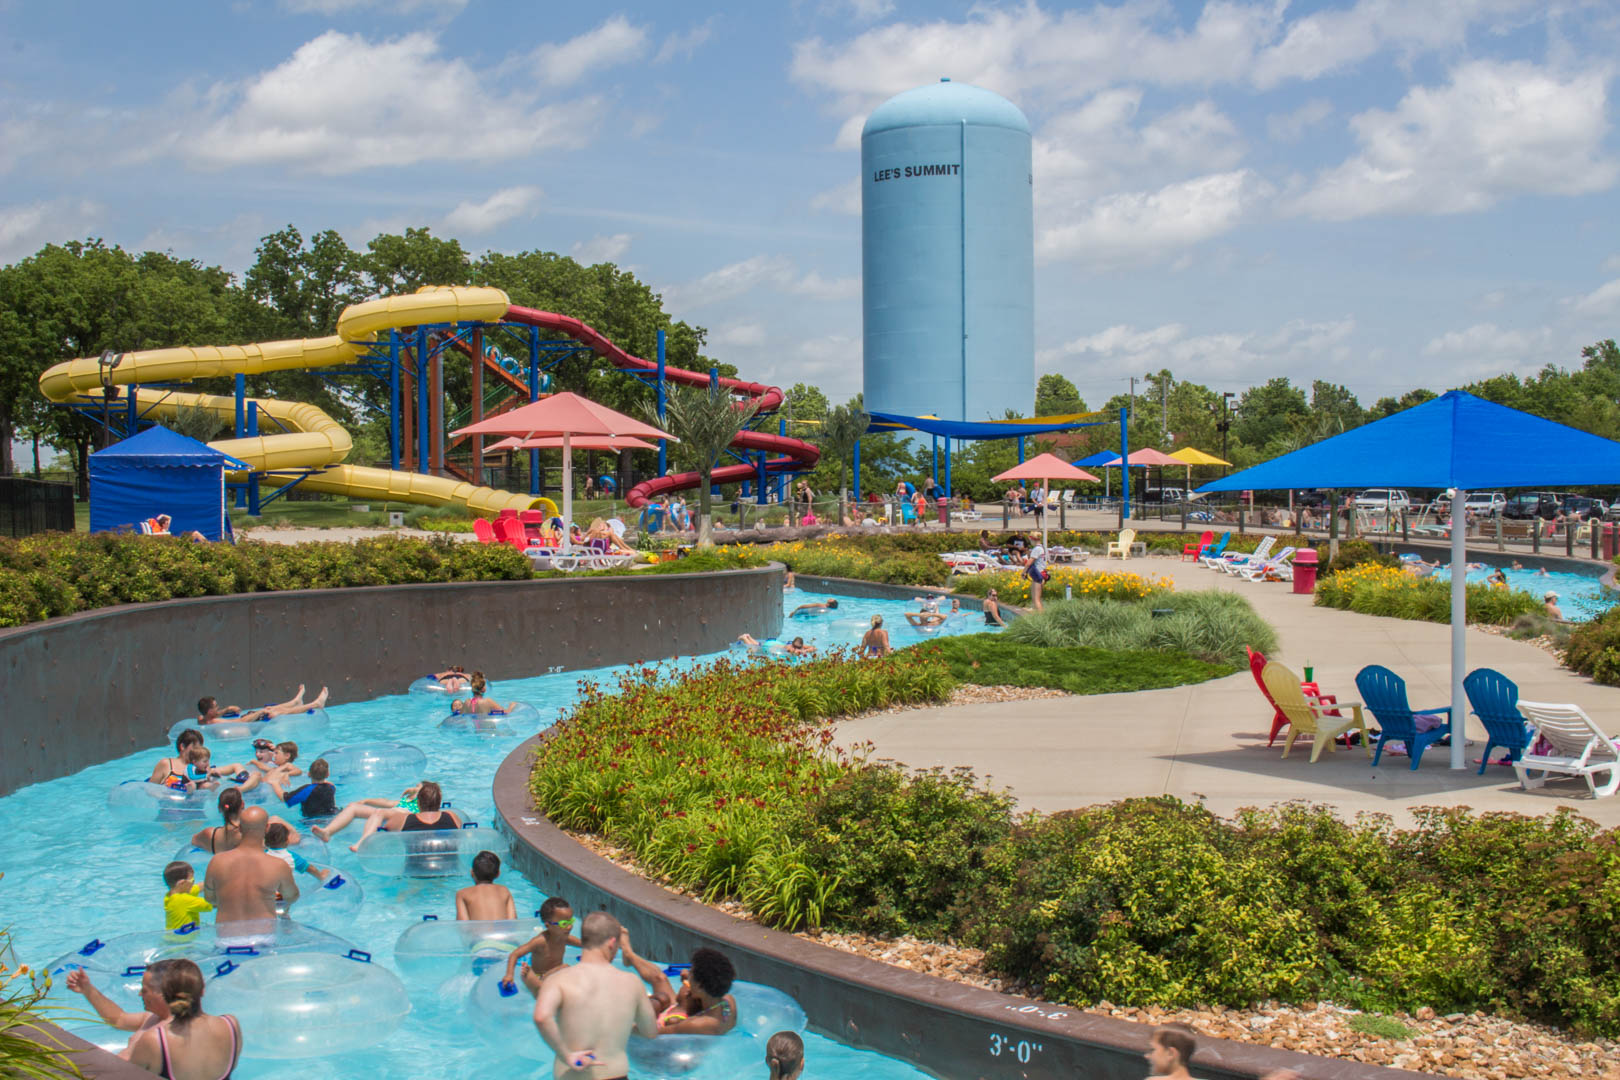 Lspr Aquatics Manager Named Outstanding New Professional City Of Lee 39 S Summit Lee 39 S Summit